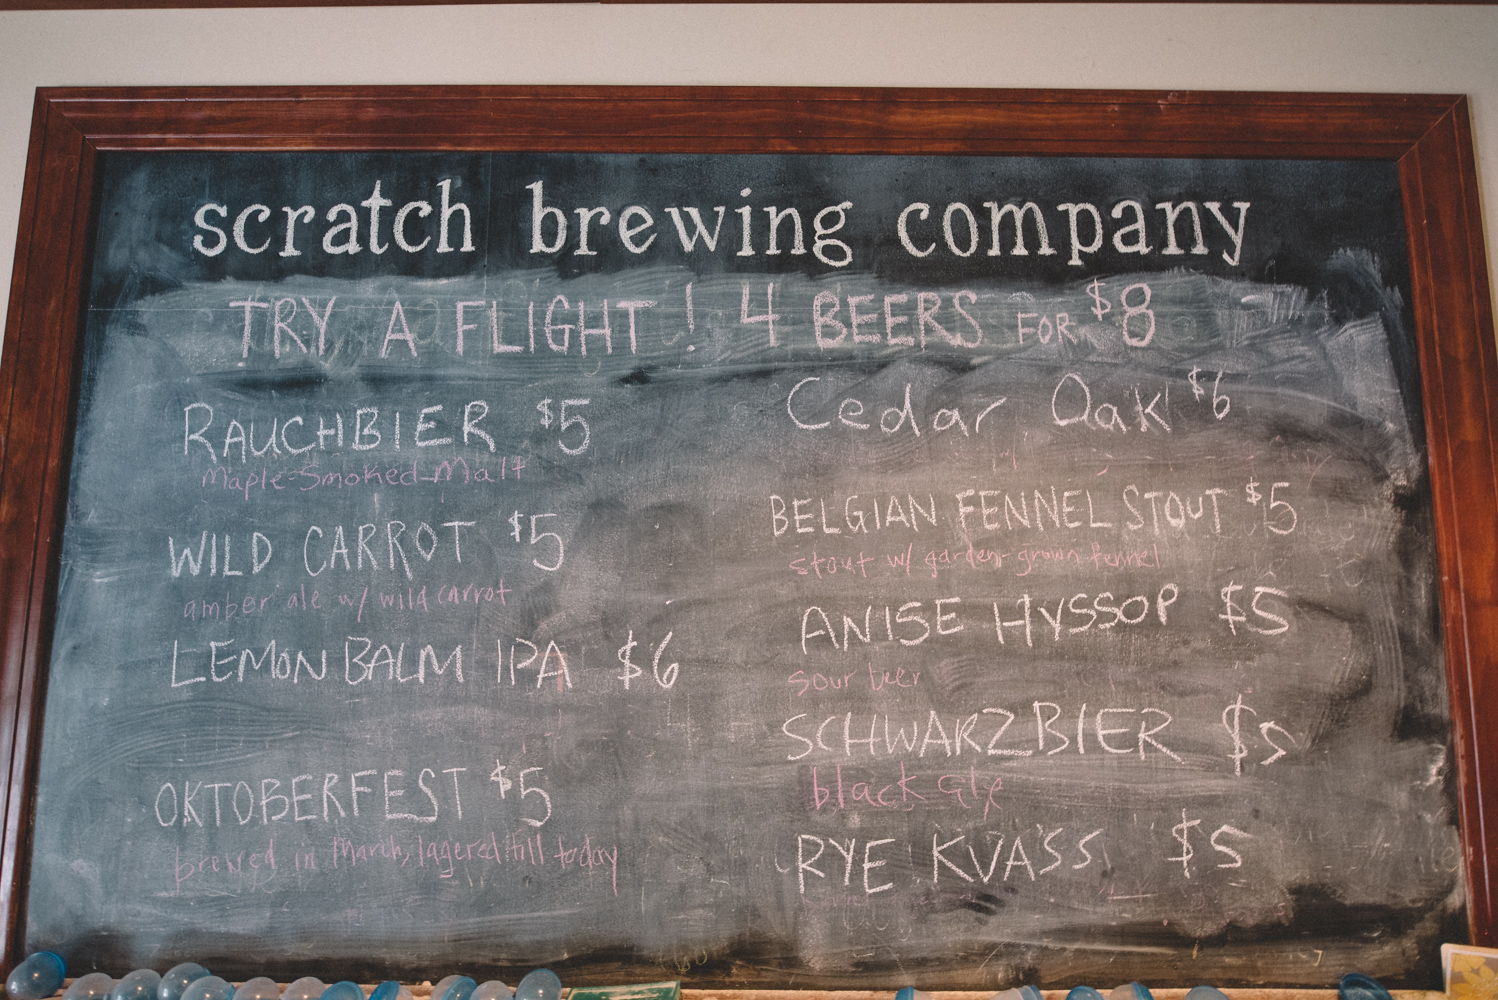 Scratch-Brewing-Co-Carbondale-Ava-Illinois-Good-Beer-Hunting-Matt-Sampson-Photography-taproom.jpg